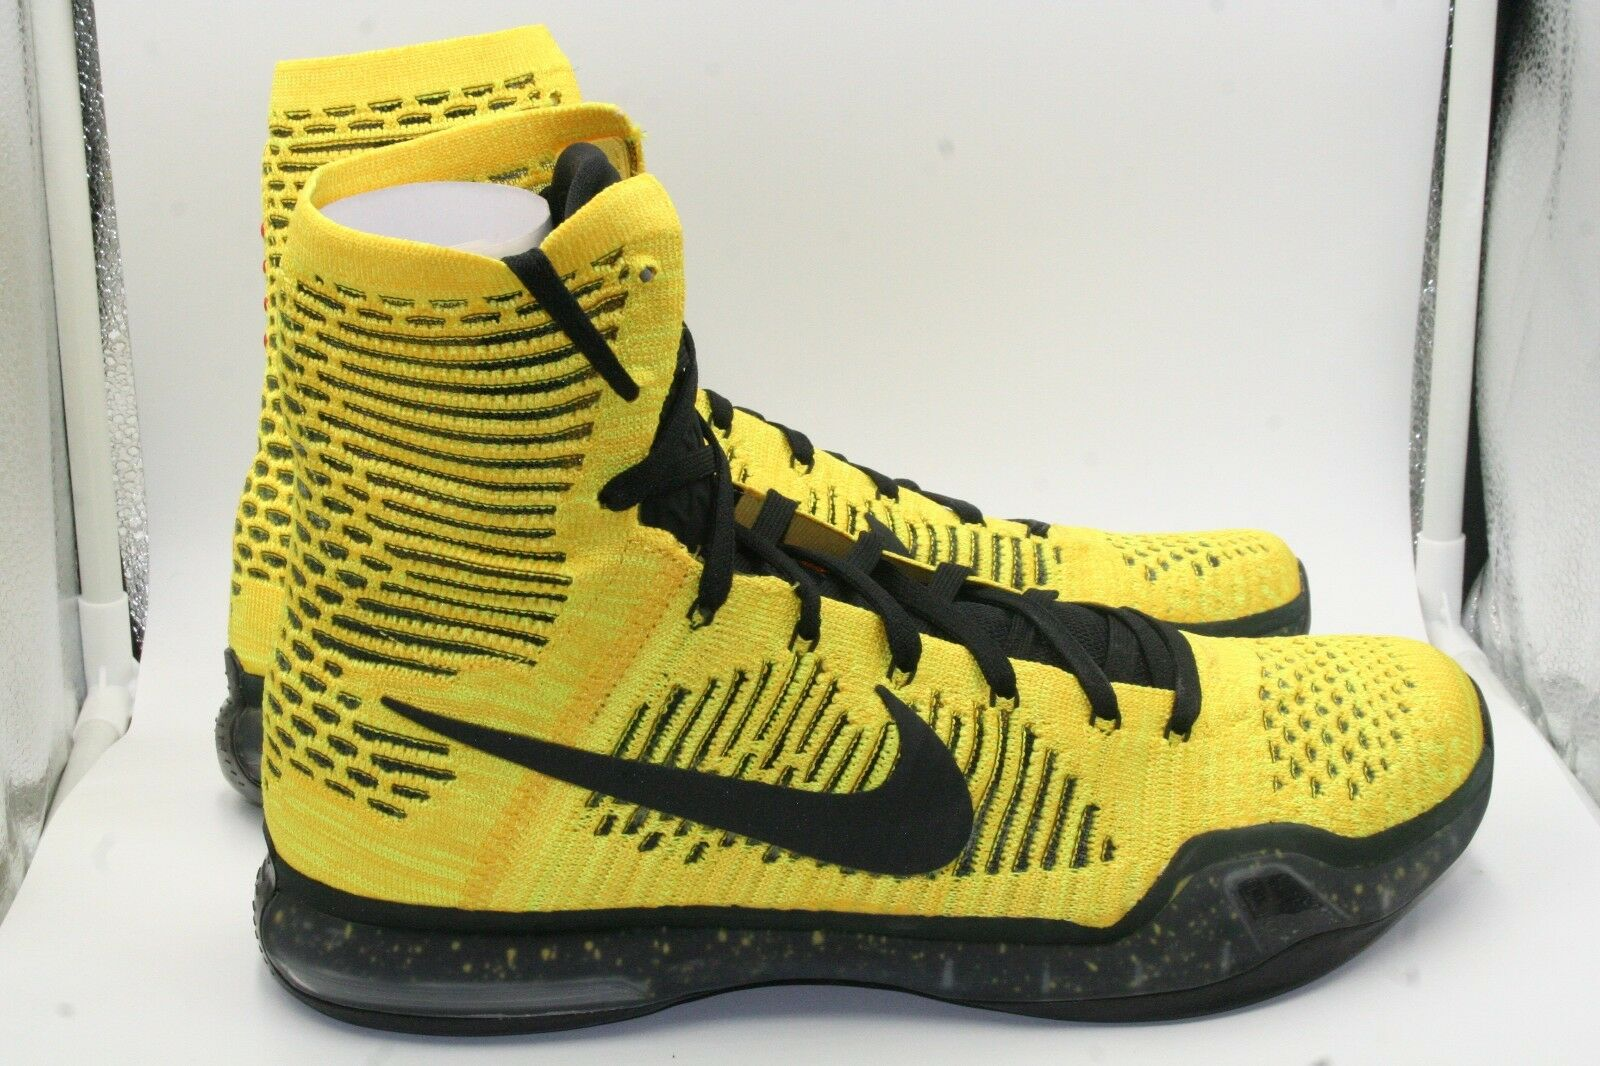 Nike Kobe amarillo x Elite Coda Tour amarillo Kobe negro tamaño 10,5 DS Opening Night W recibo 3587df